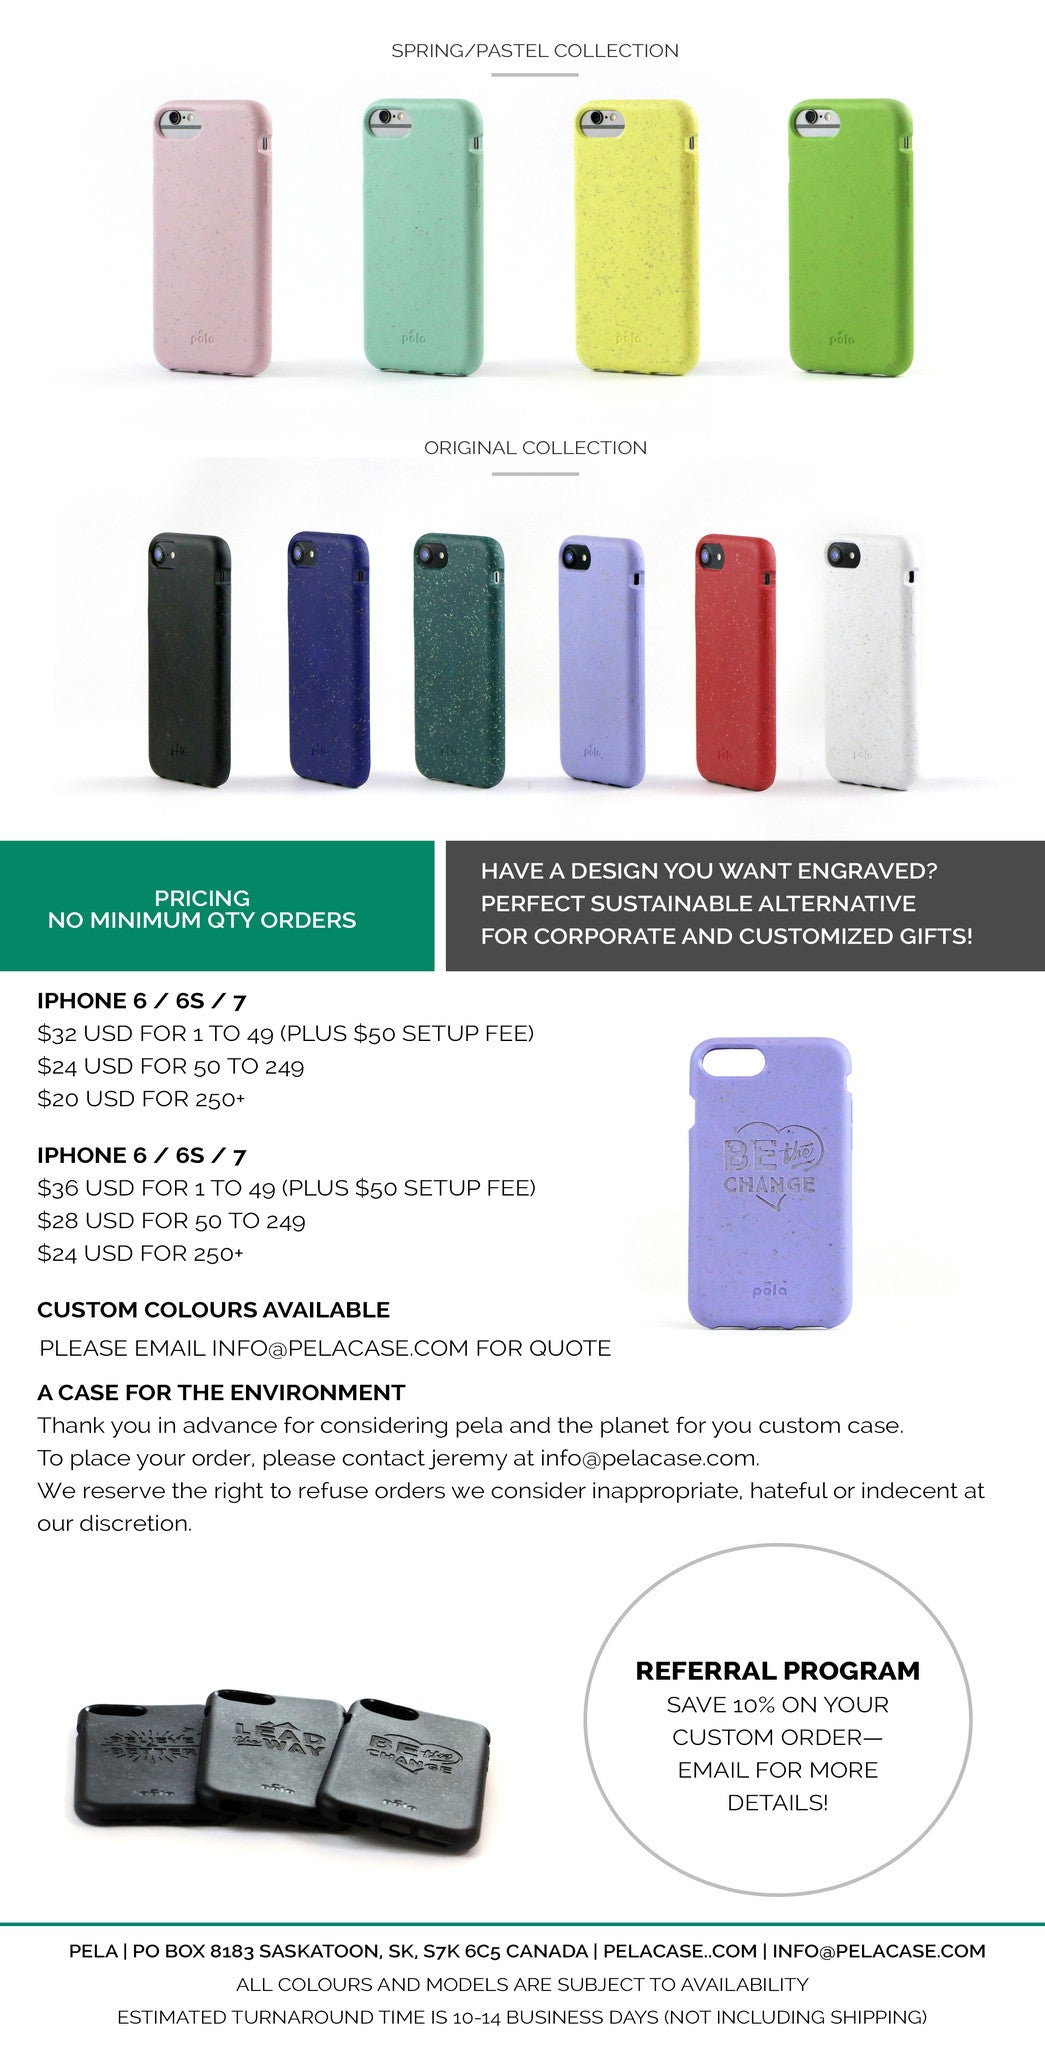 Custom Eco-Friendly Corporate Gifts and Swag - Engraved Pela iPhone Case